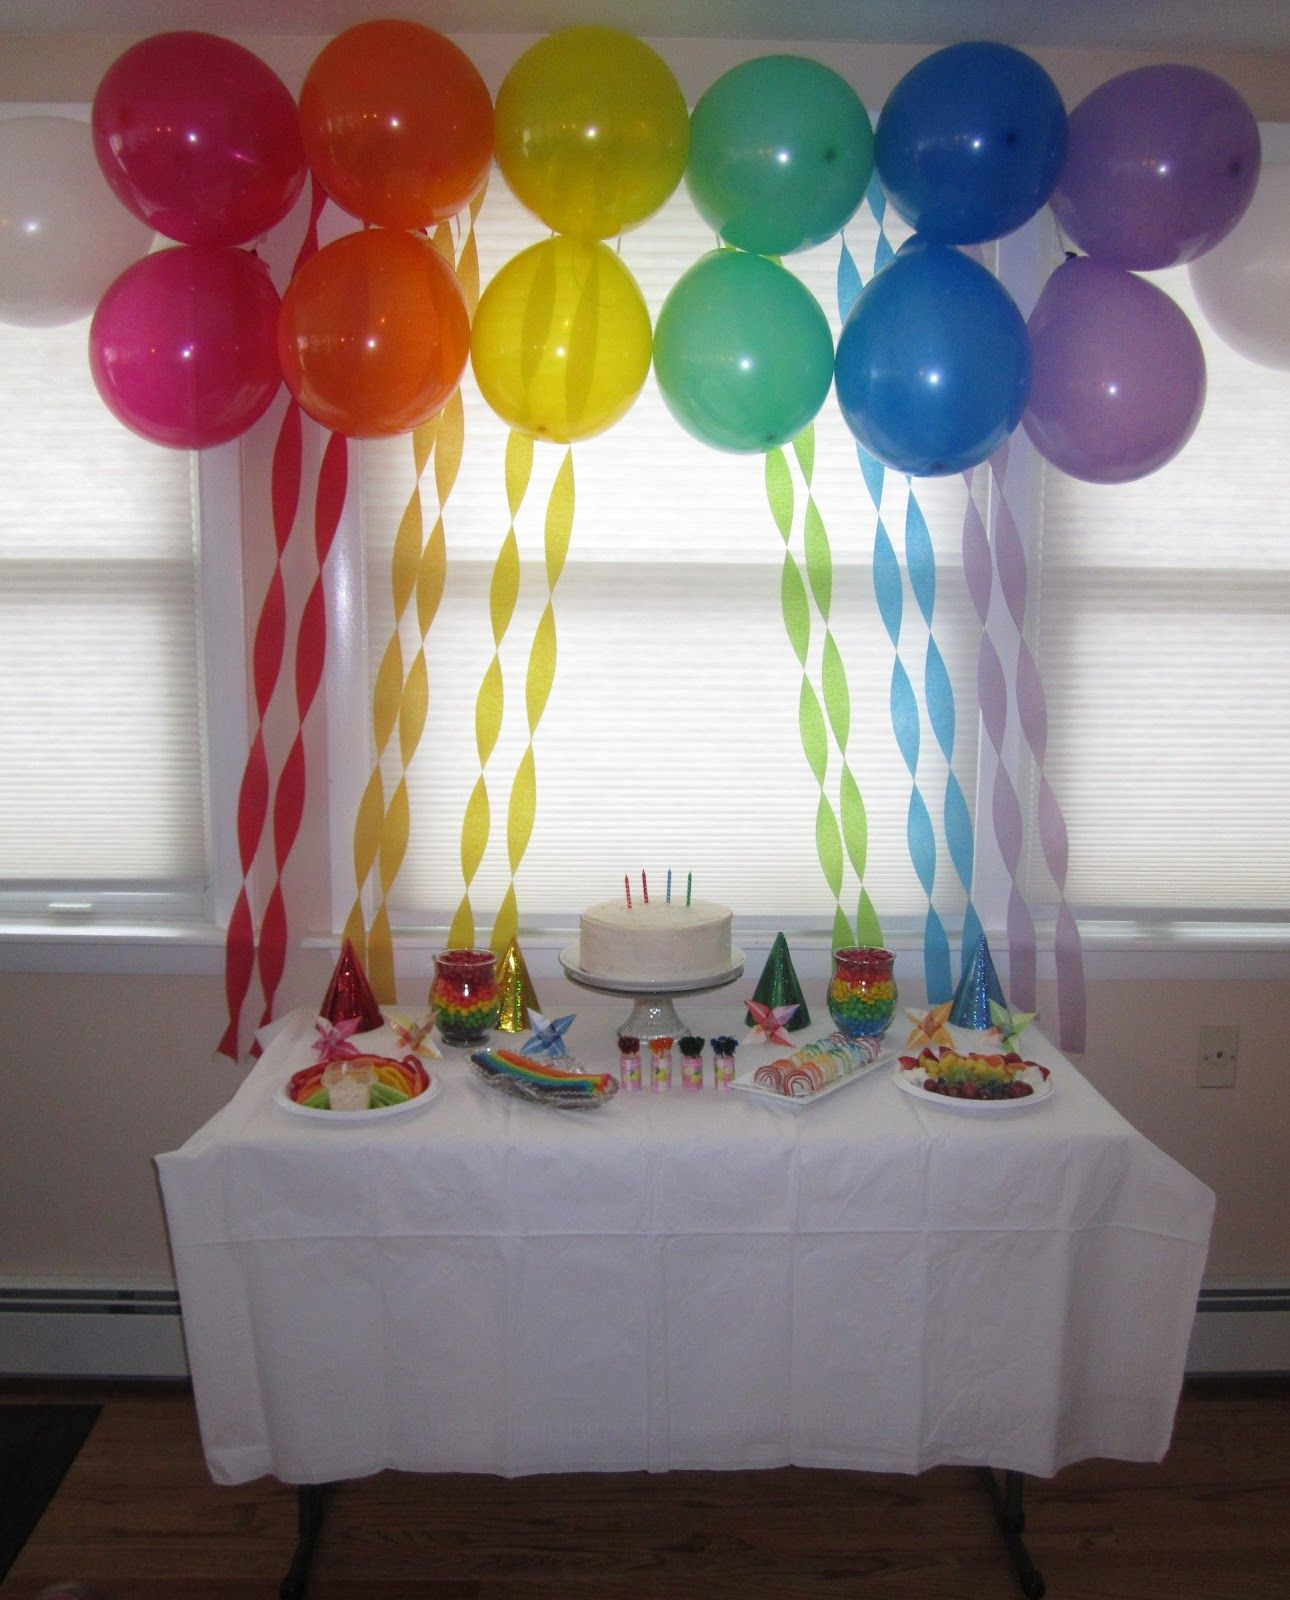 Birthday Table Presentation: The Display Table With Rainbow